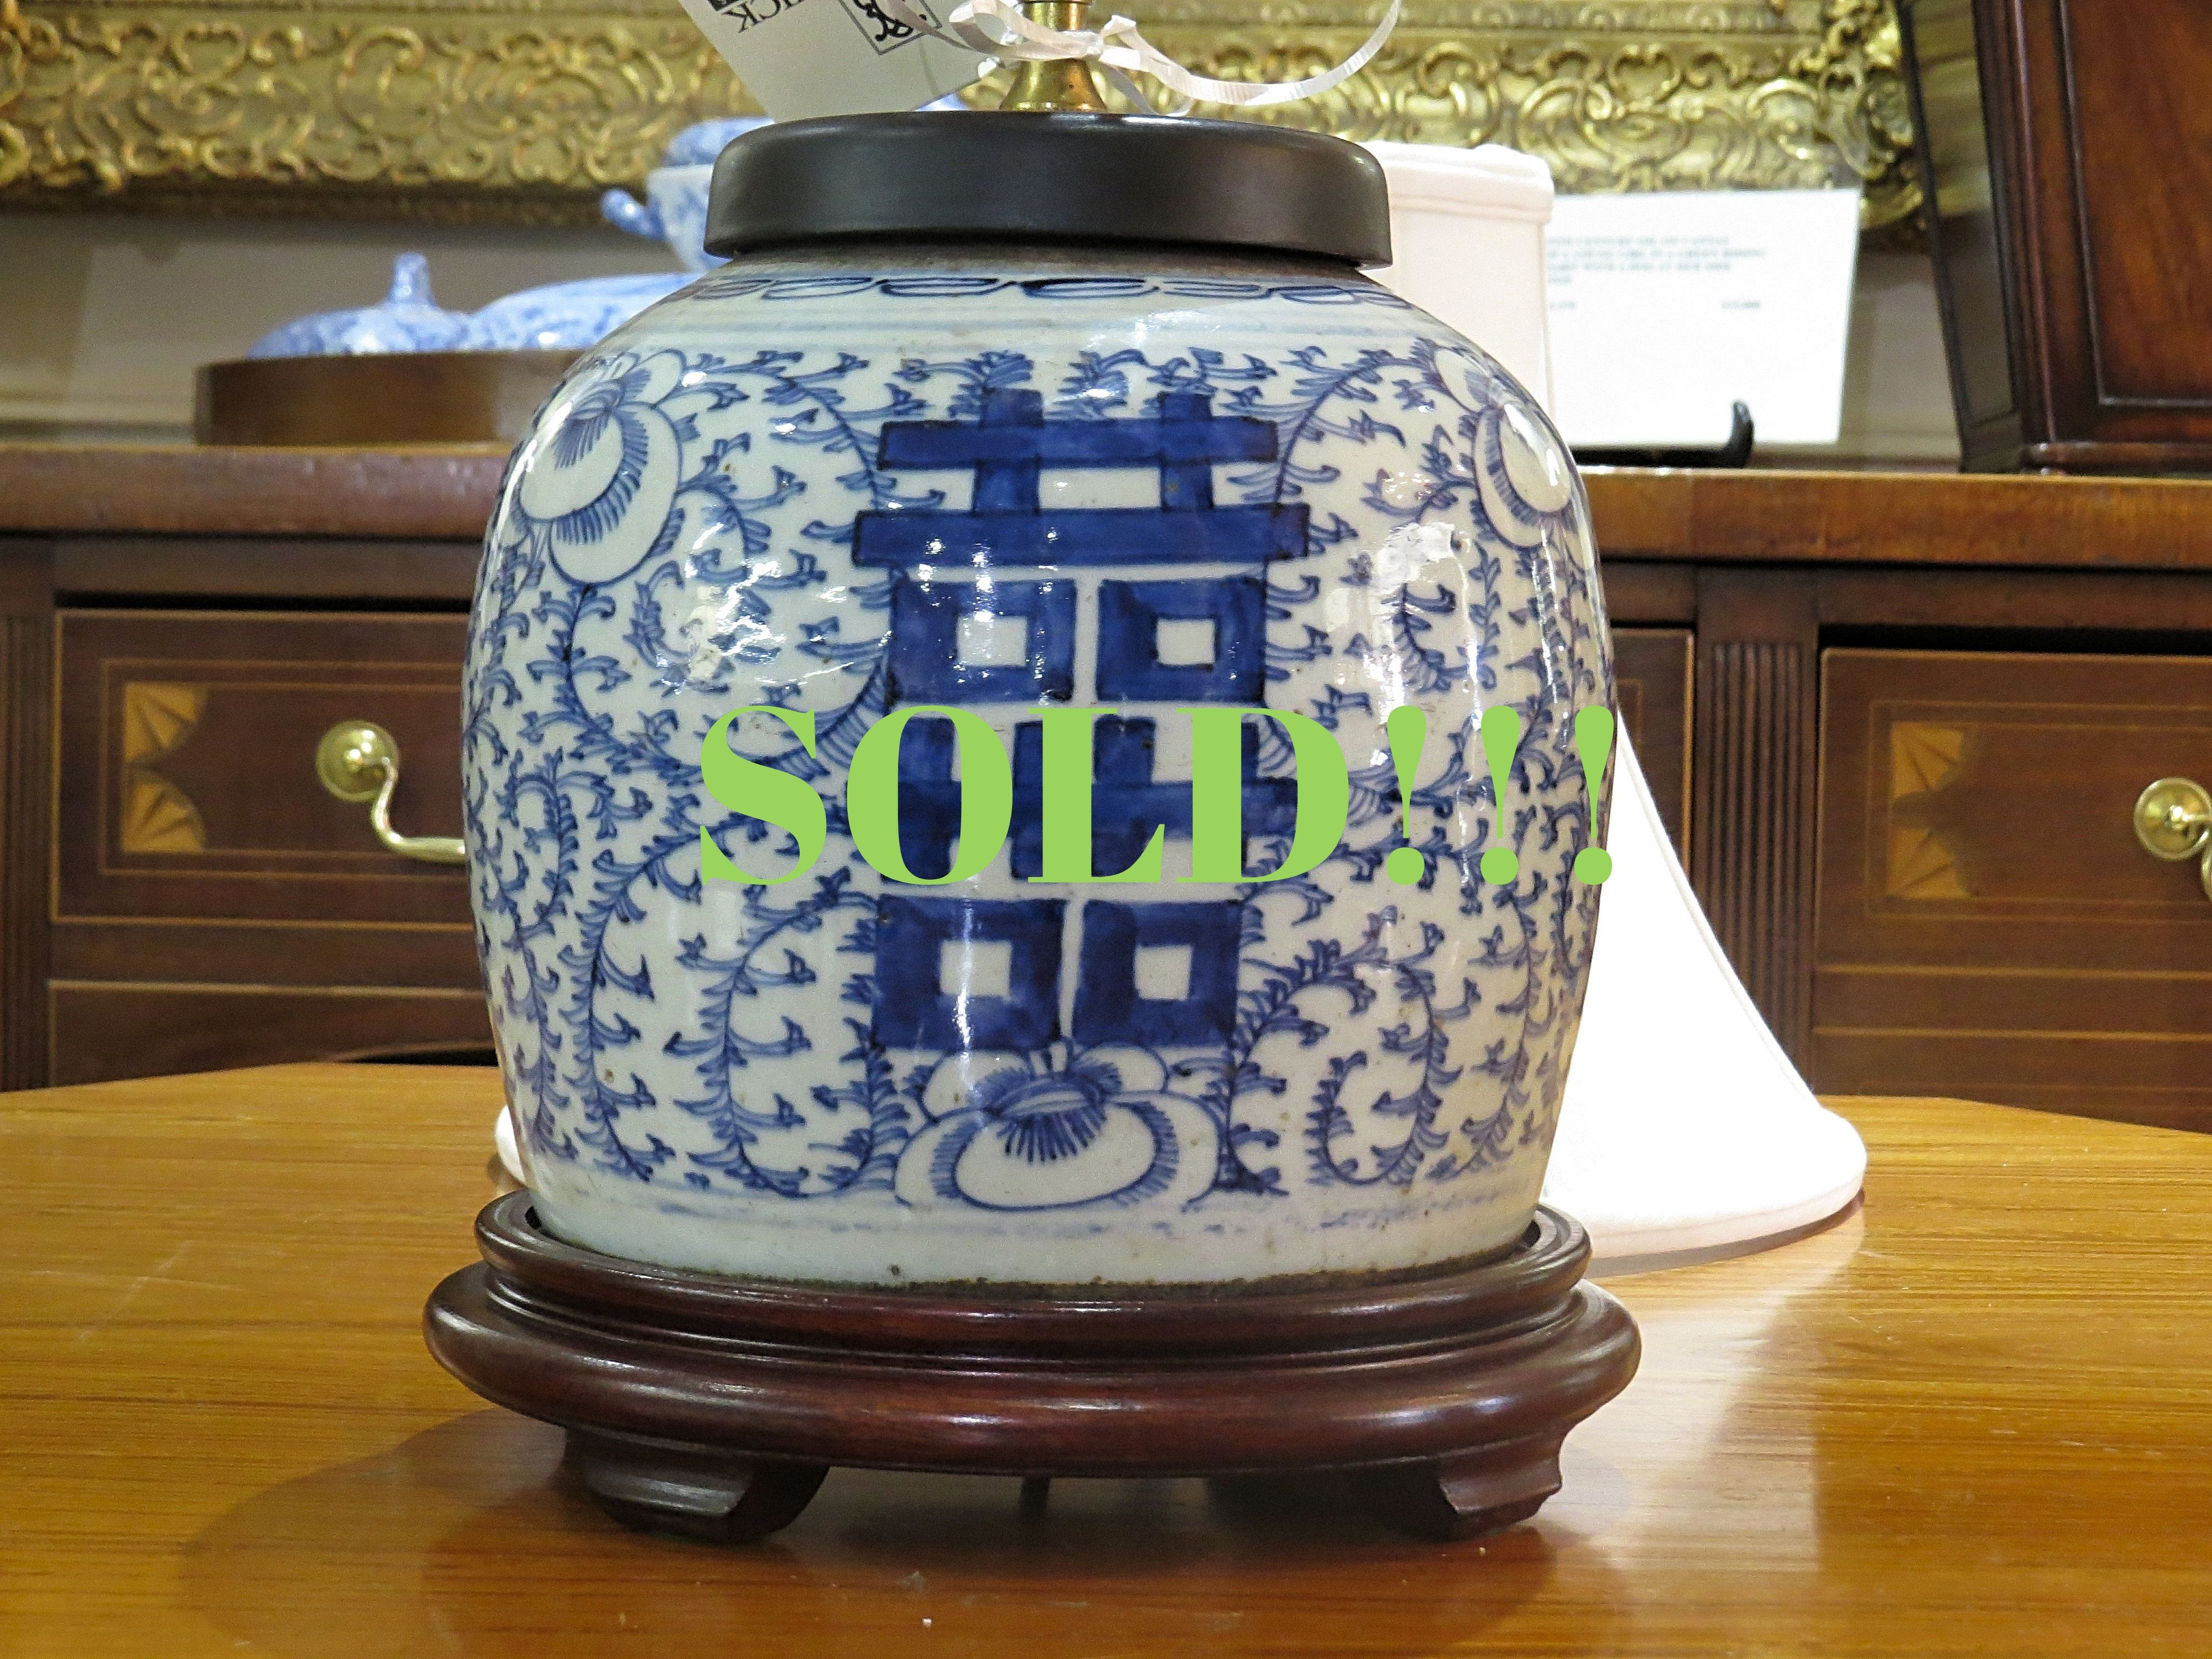 Chinese Import Blue and White Porcelain Jar Lamp  (SOLD)